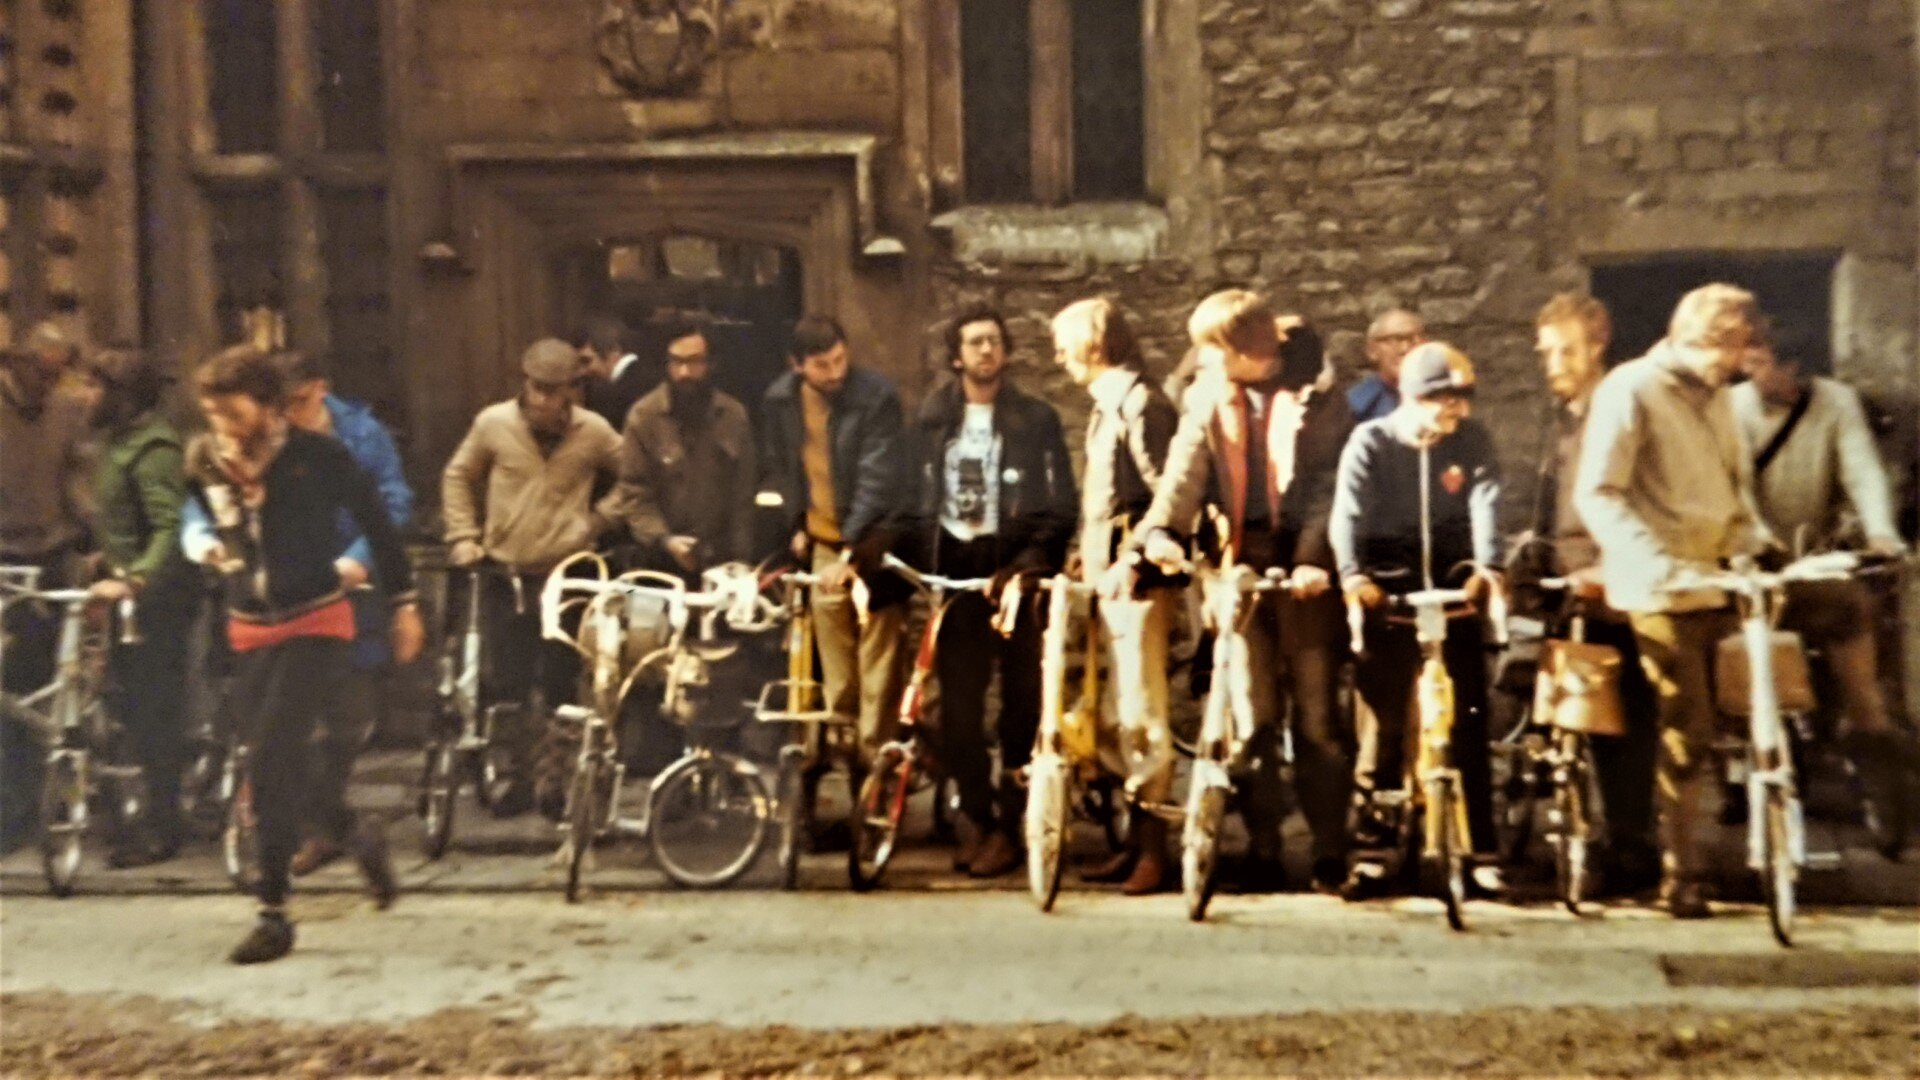 Moulton Bicycle Club Weekend at The Hall, 1980